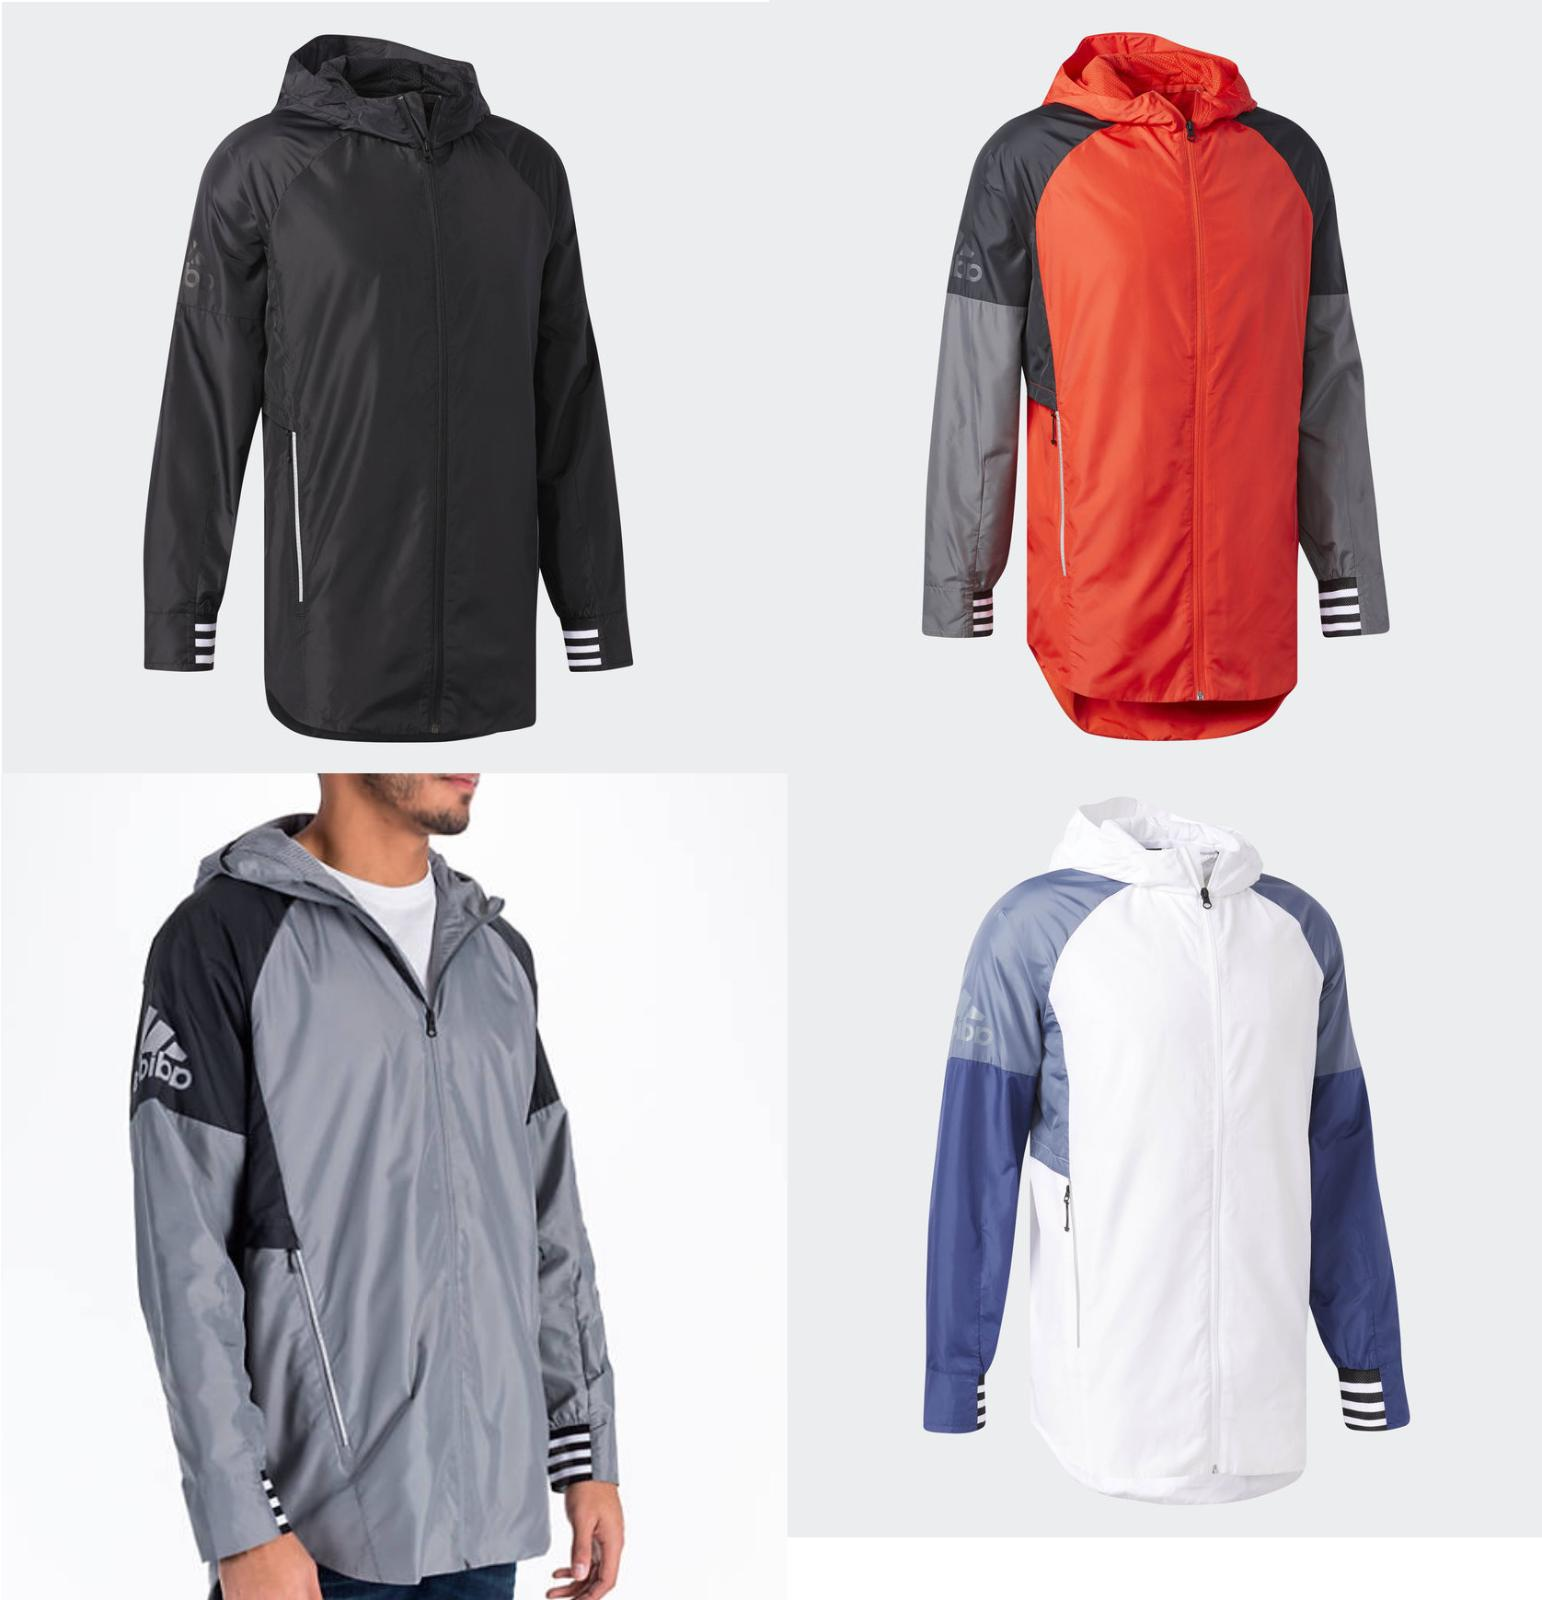 Adidas Men's ID Woven Shell Jacket Coat Hooded All Sizes Col